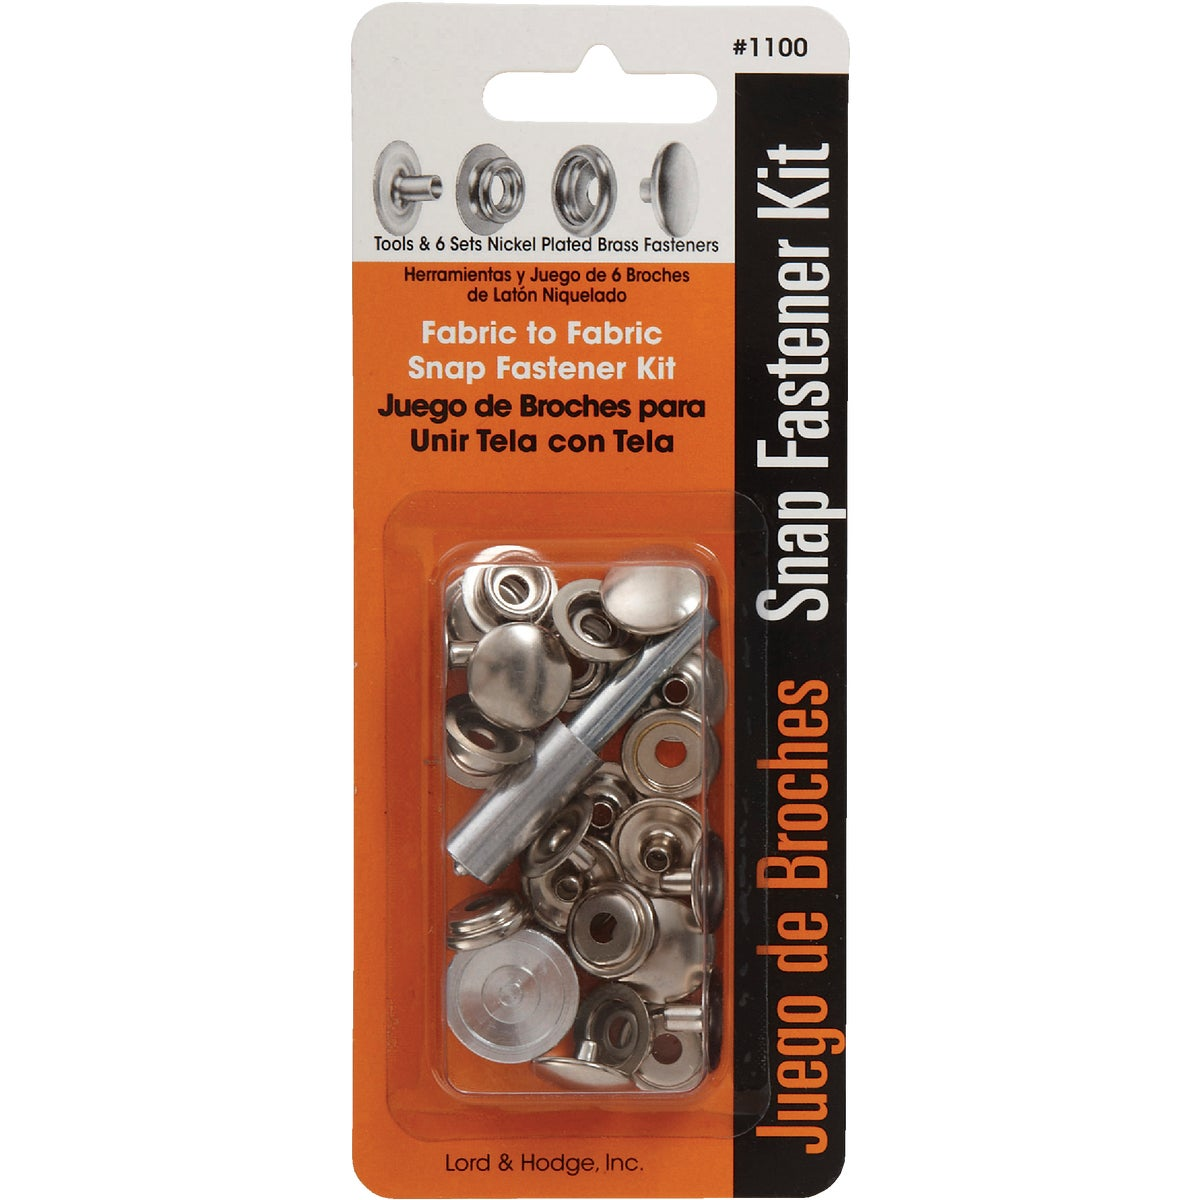 SNAP FASTENER KIT - 1100 by Lord & Hodge Inc